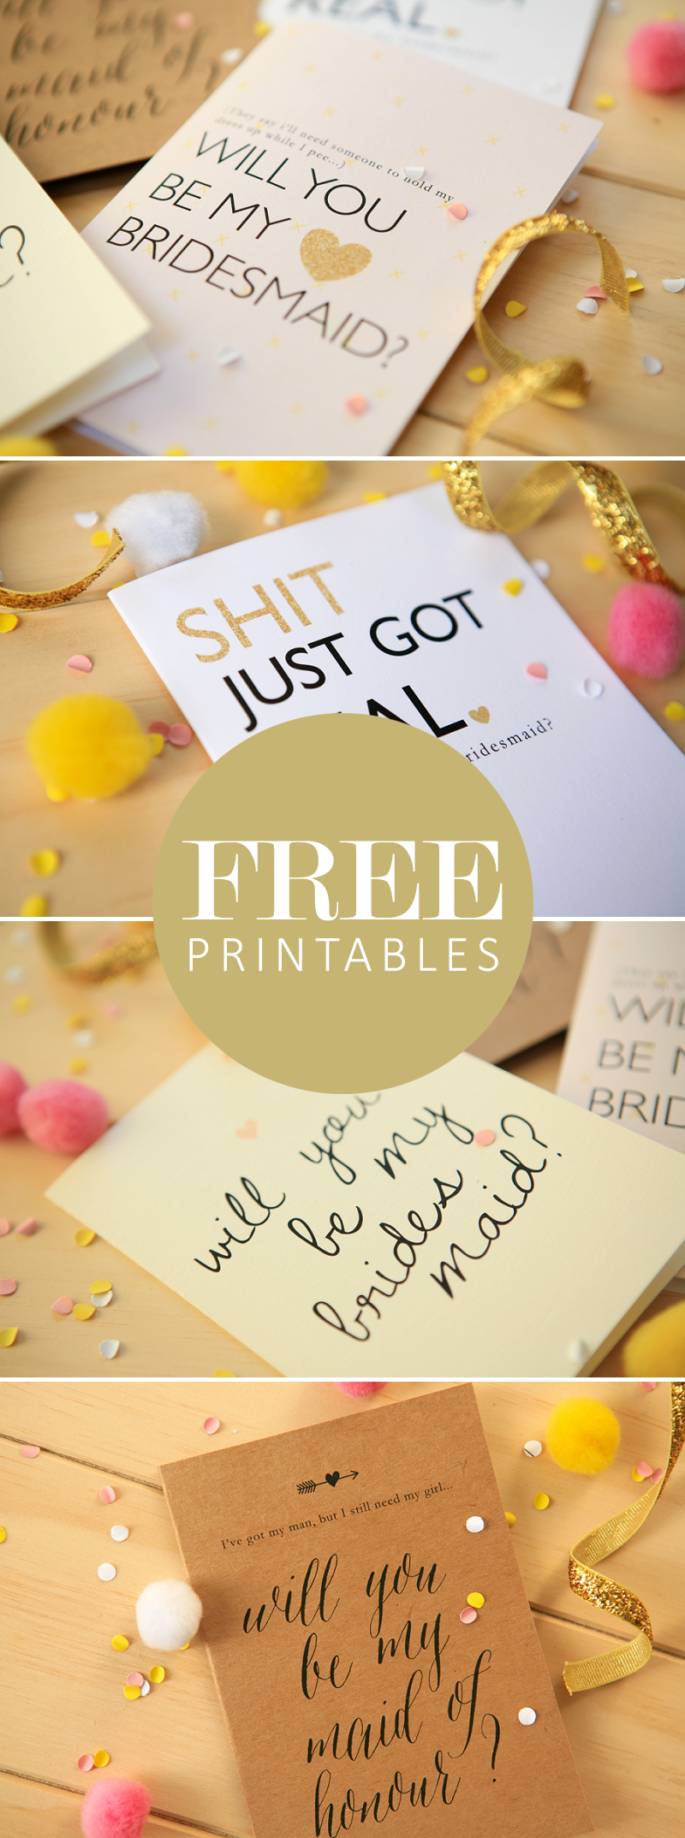 Free Will You Be My Bridesmaid Printables Exclusive To Pl Dream